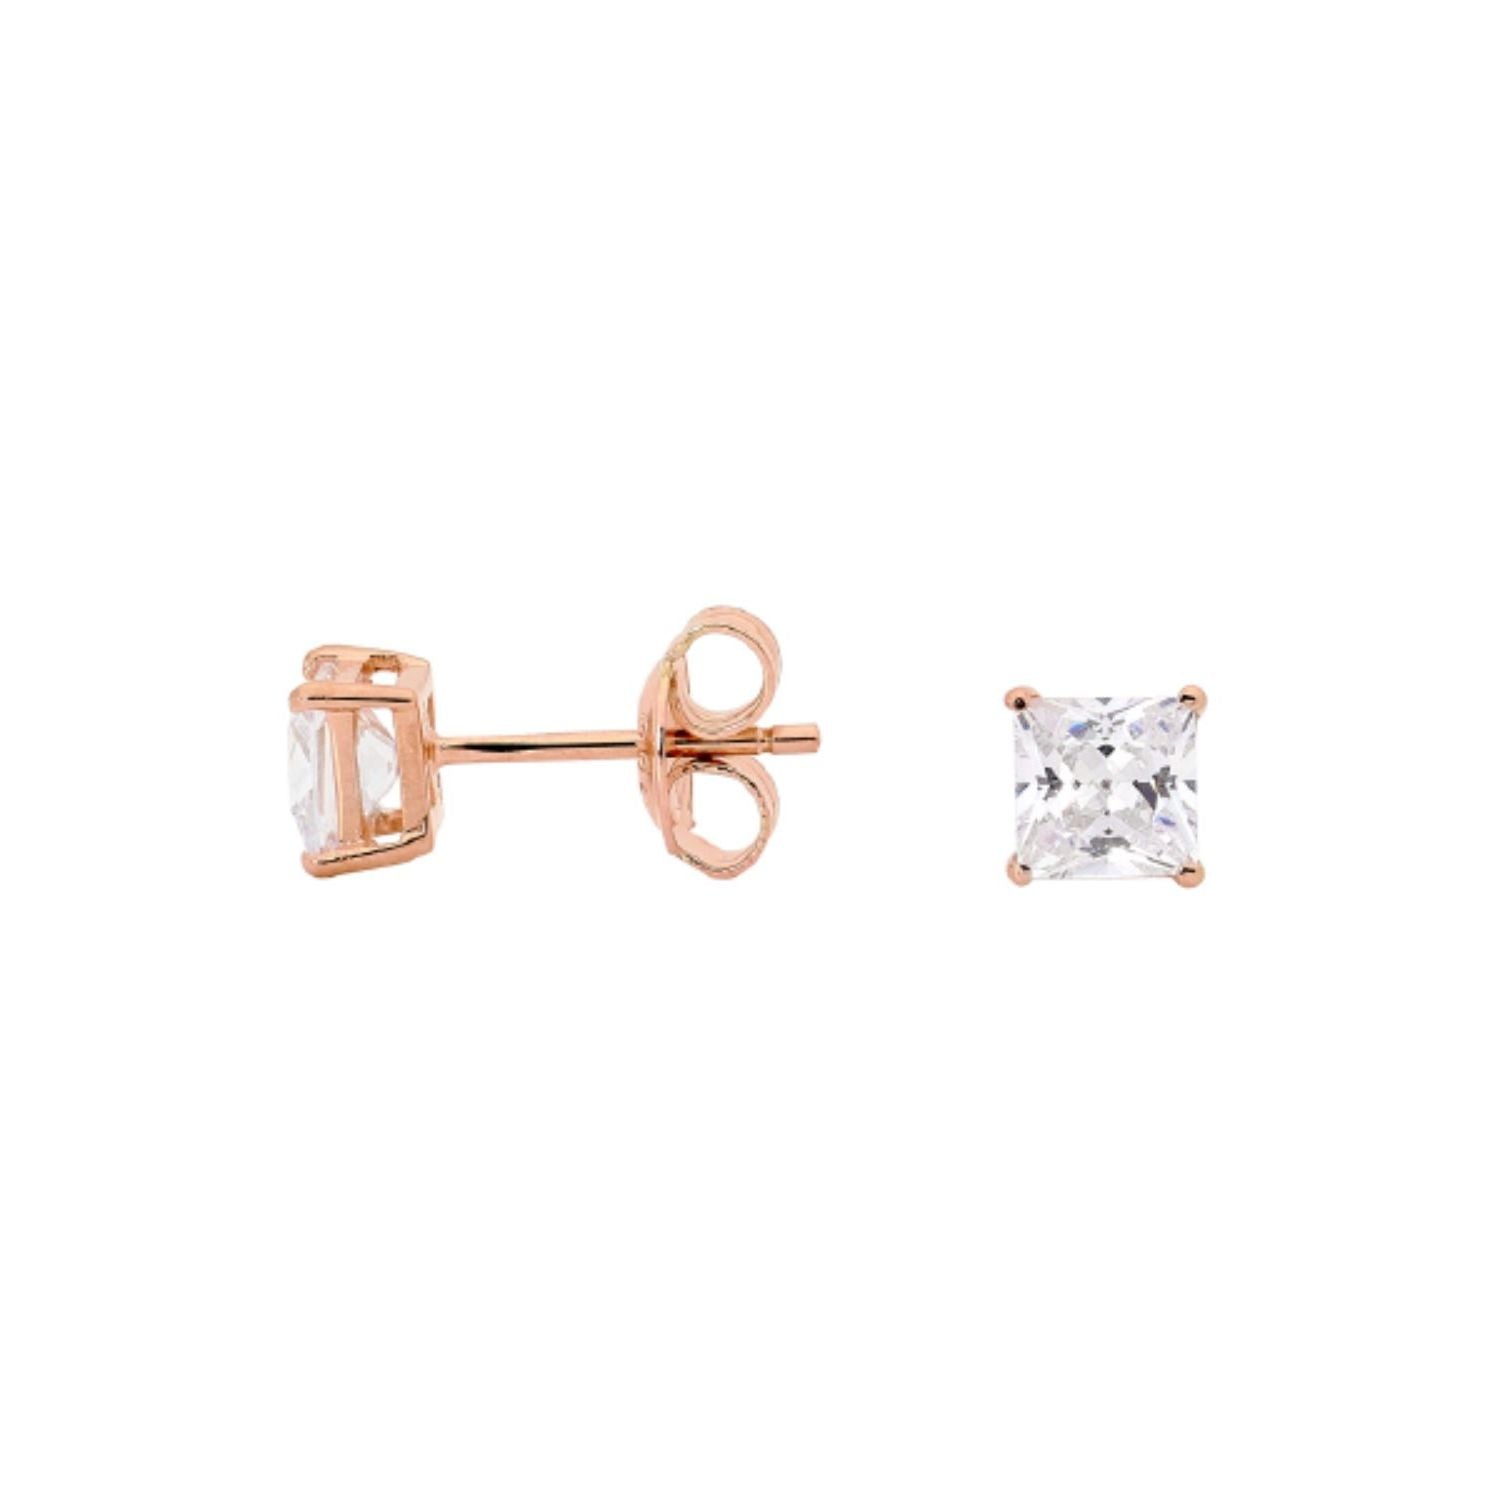 Georgini - Rose Gold Plated Sterling Silver 5mm Cubic Zirconia Stud Earrings